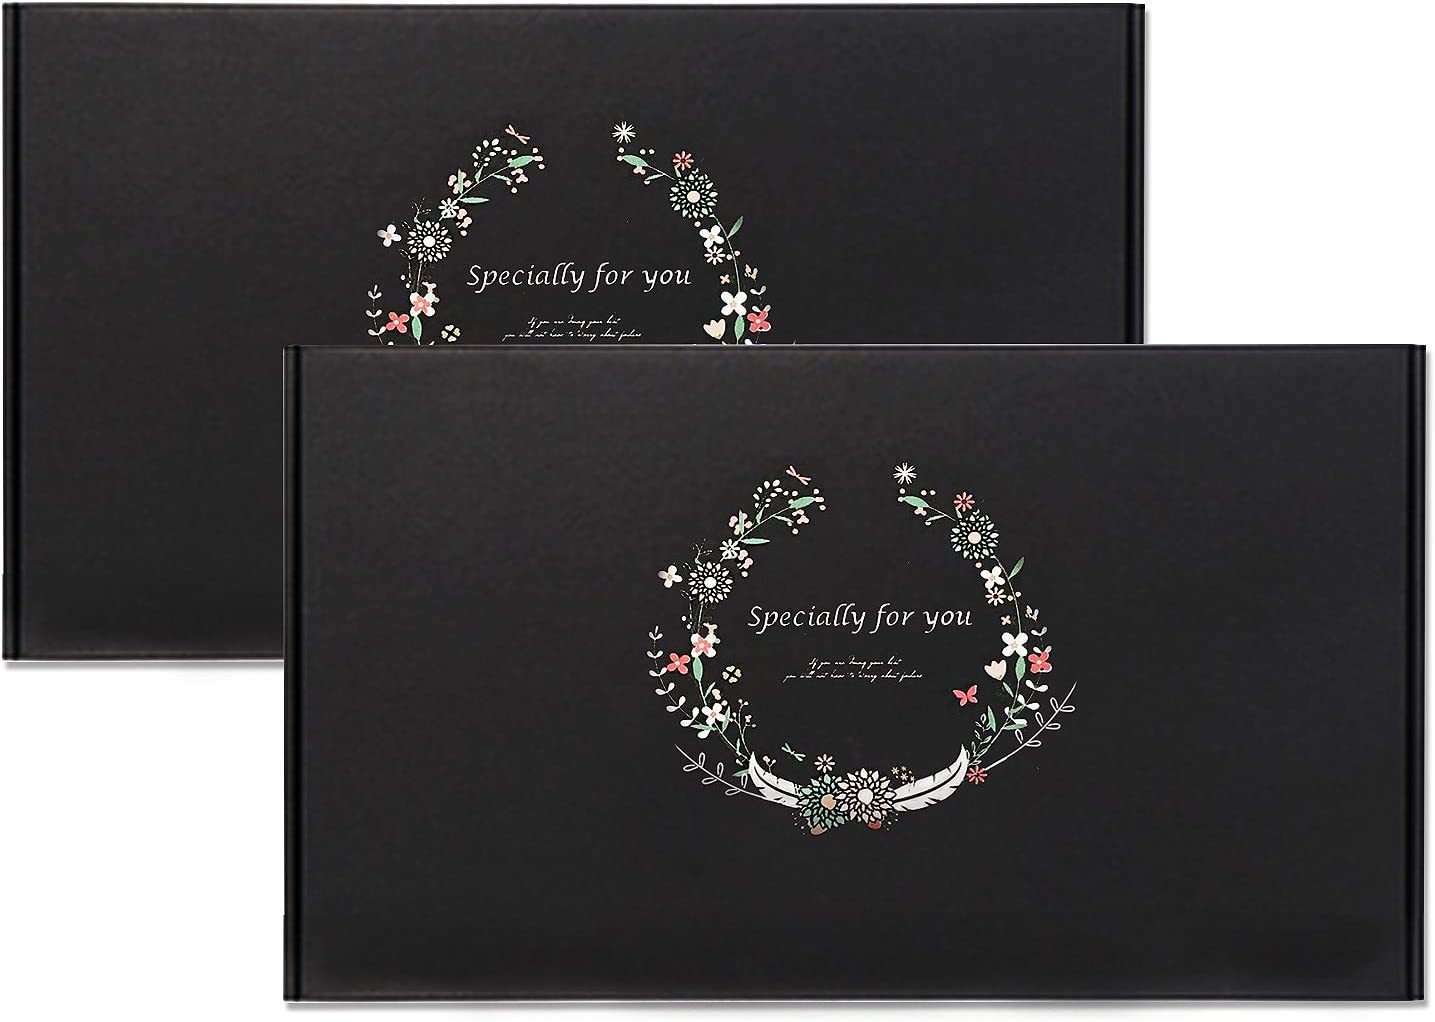 Sale Small Max 46% OFF Black Shipping Box for Business Cardboa 20 - of Pack